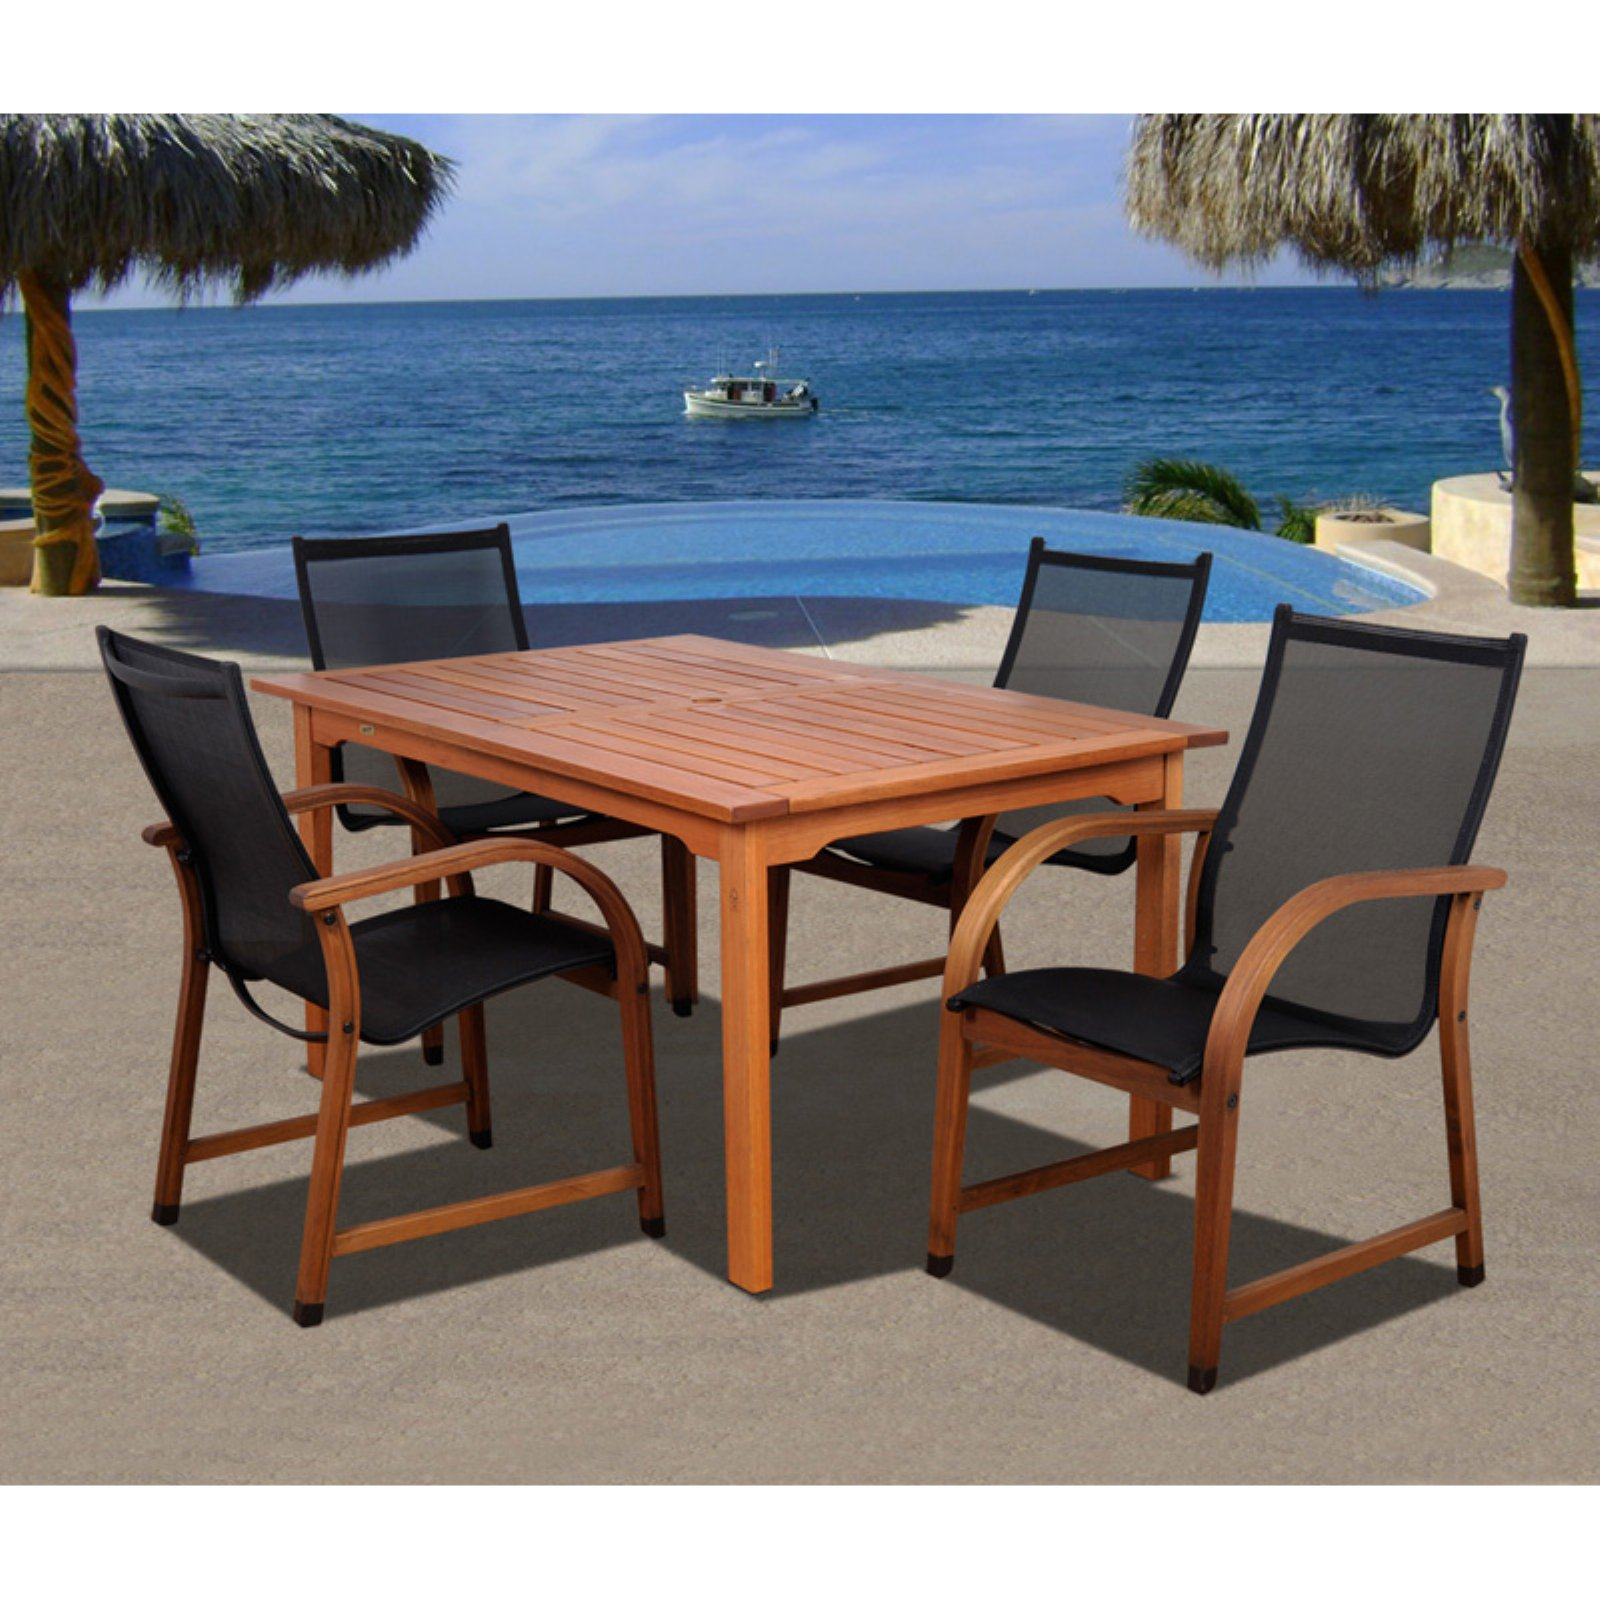 Amazonia Indiana 5 Piece Rectangular Eucalyptus Patio Dining Set